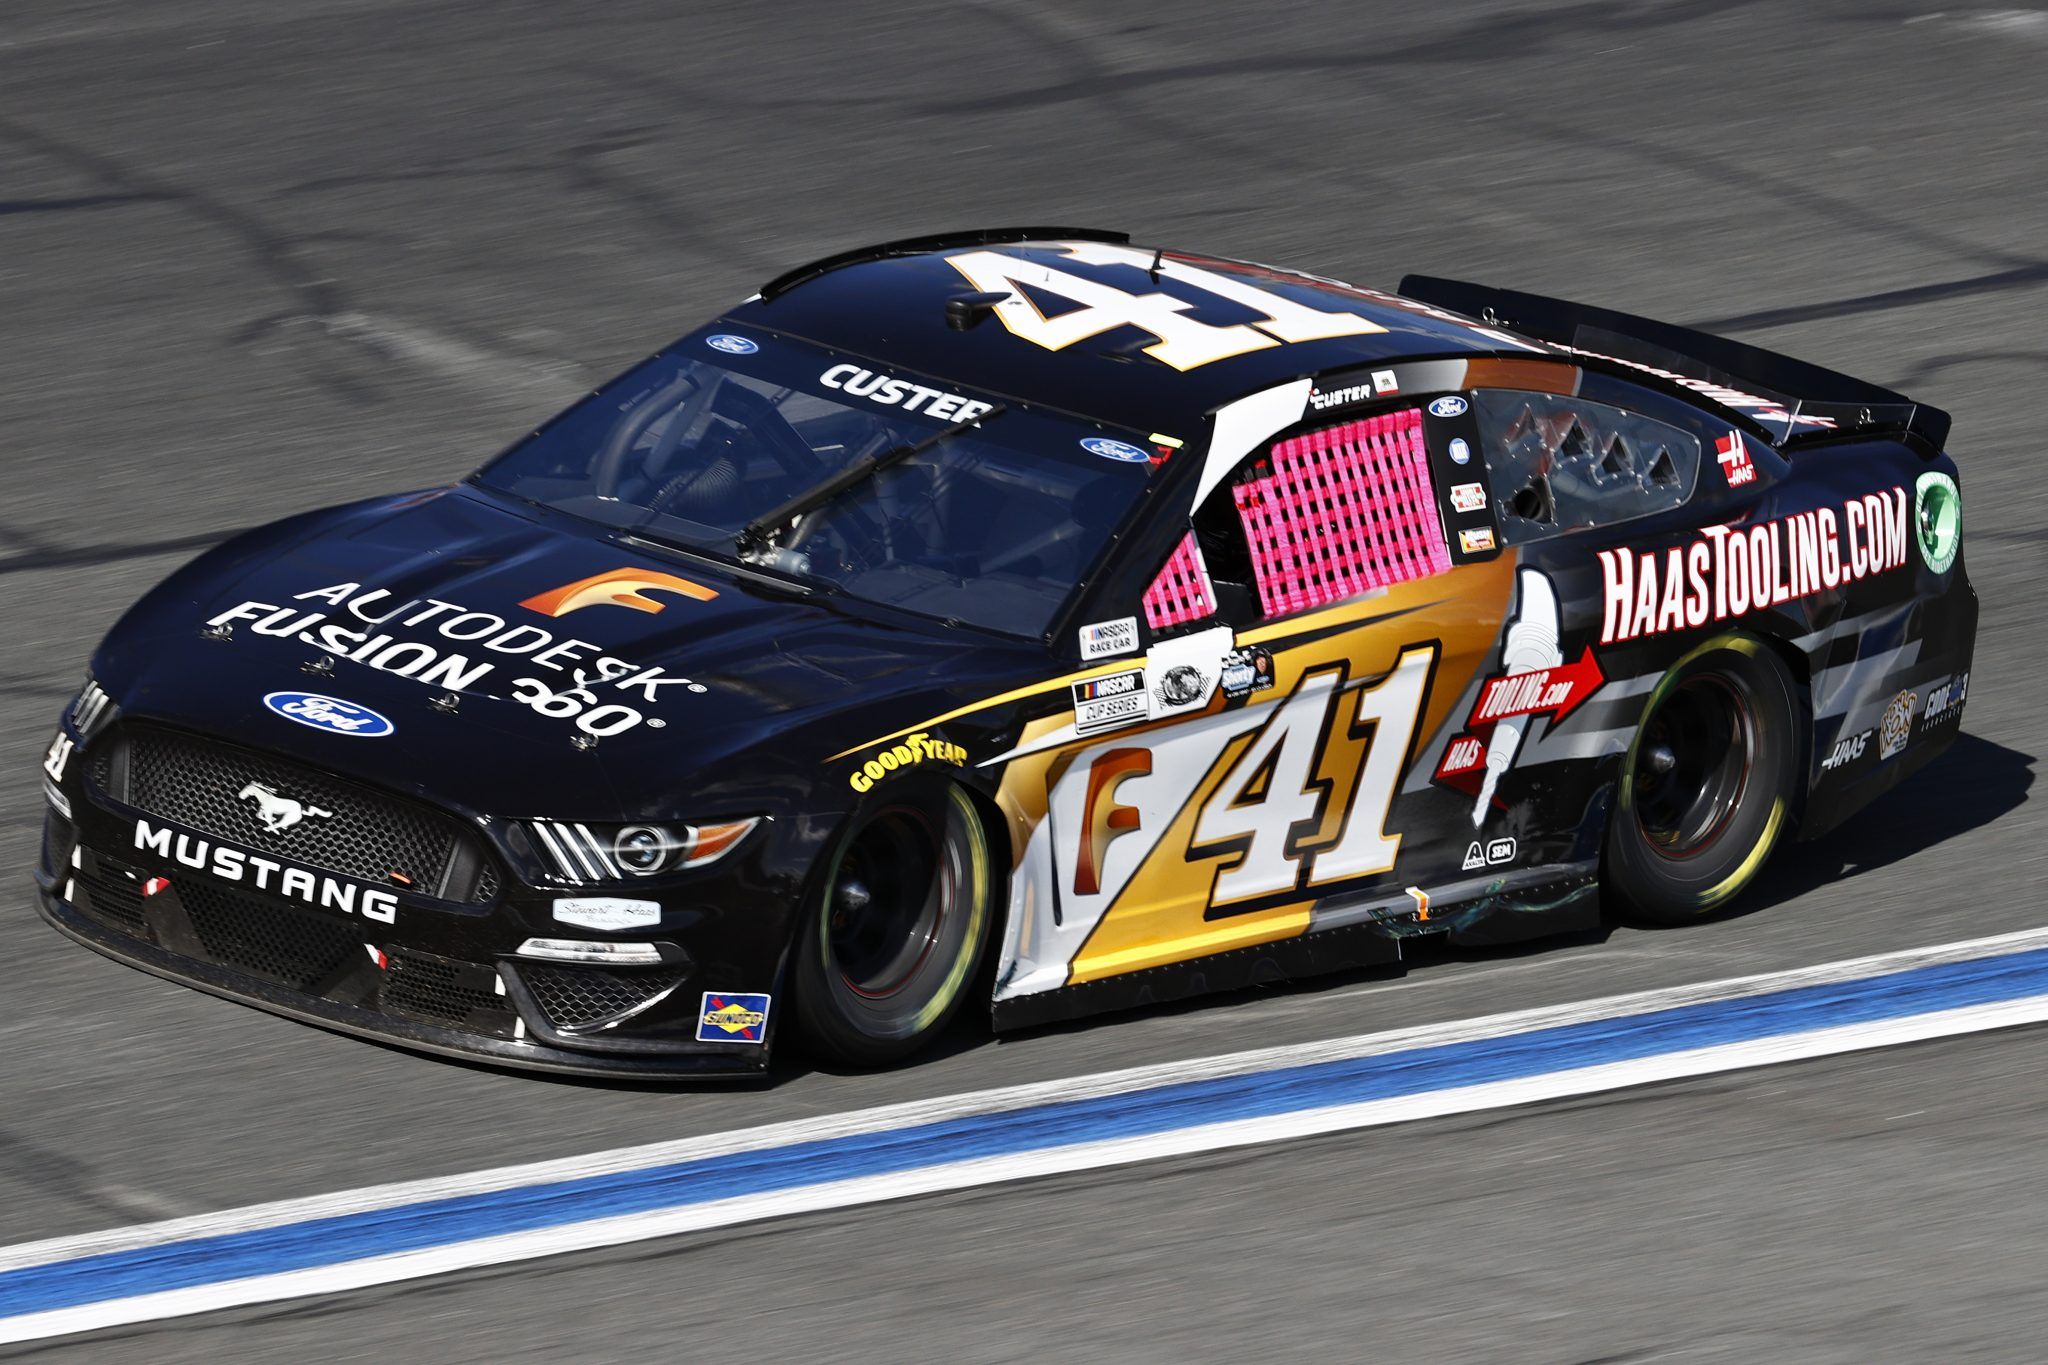 CONCORD, NORTH CAROLINA - OCTOBER 10: Cole Custer, driver of the #41 Autodesk/HaasTooling.com Ford, drives during the NASCAR Cup Series Bank of America ROVAL 400 at Charlotte Motor Speedway on October 10, 2021 in Concord, North Carolina. (Photo by Jared C. Tilton/Getty Images) | Getty Images